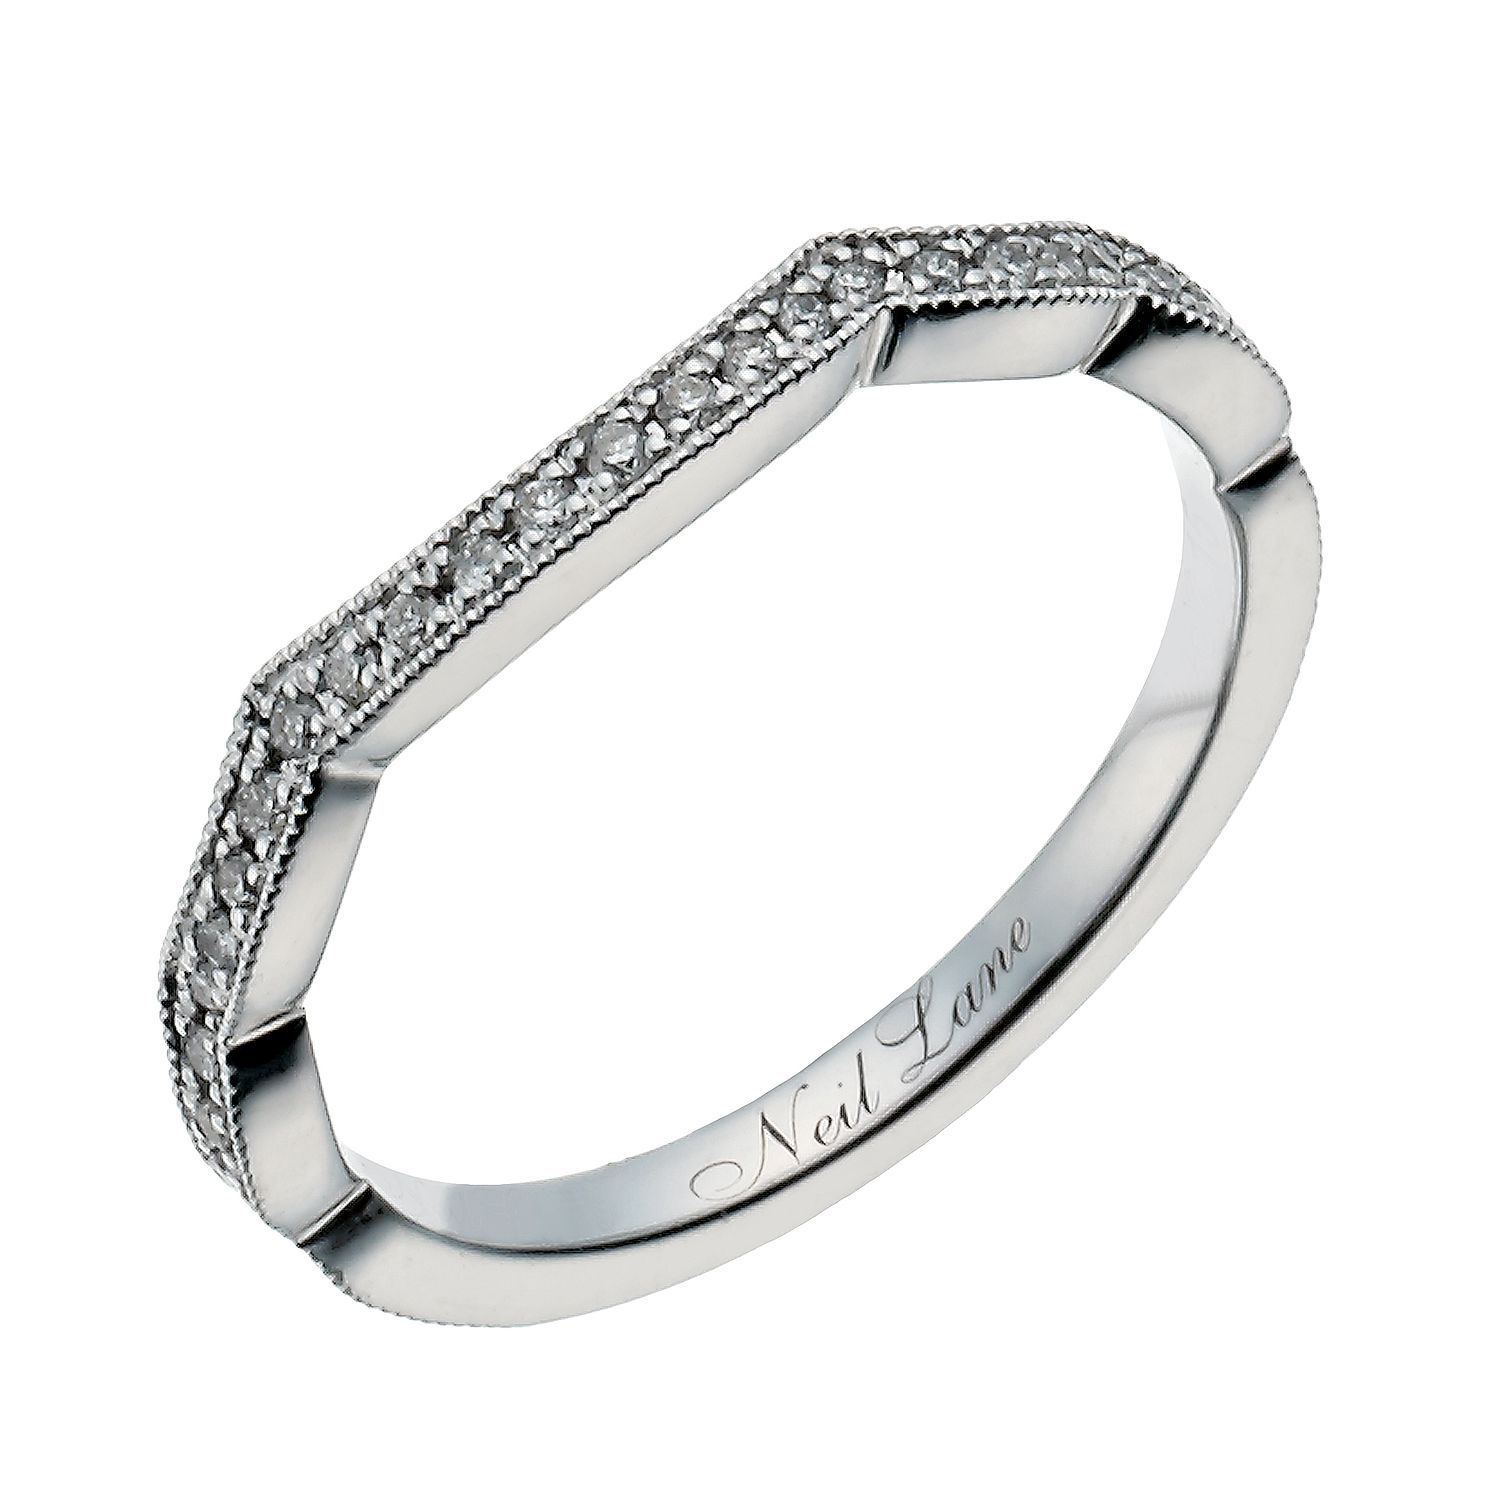 Neil Lane 14ct white gold 0.15ct diamond shaped band - Product number 1349856